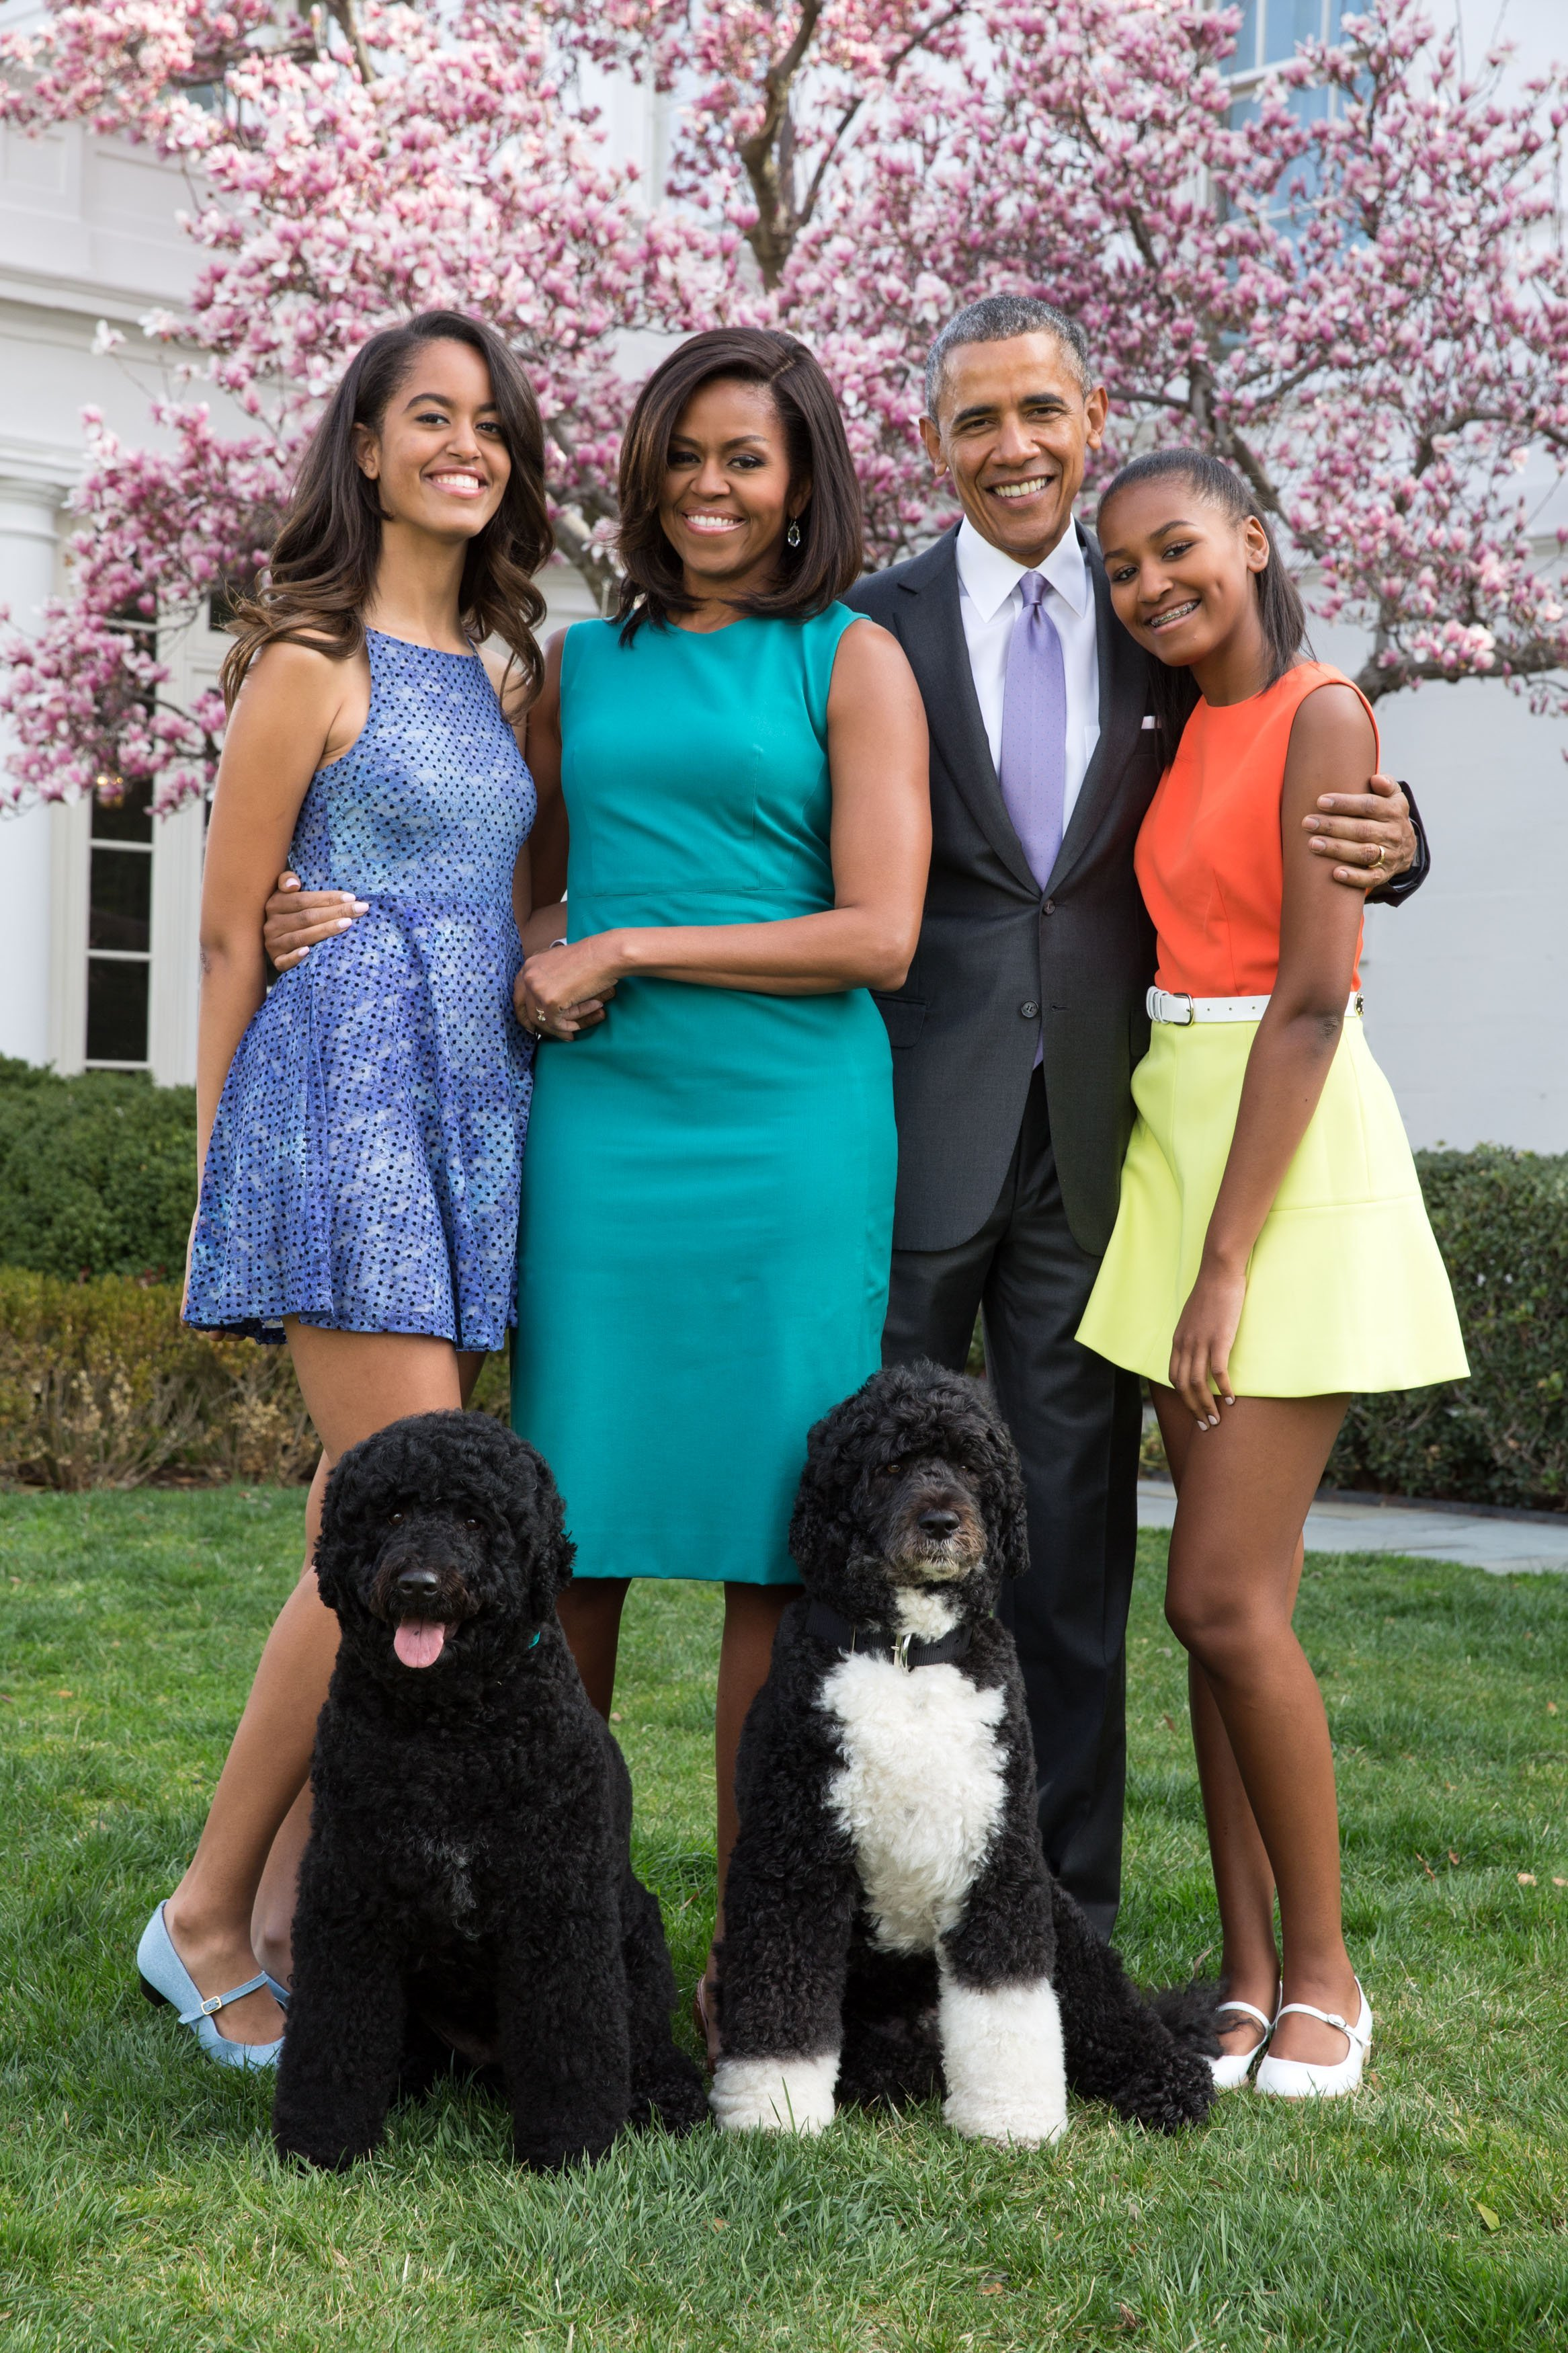 Barack Obama, Michelle, Malia & Sasha pose for a family portrait with their pets Bo and Sunny at the White House on Apr. 5, 2015 in Washington, DC. | Photo: Getty Images.